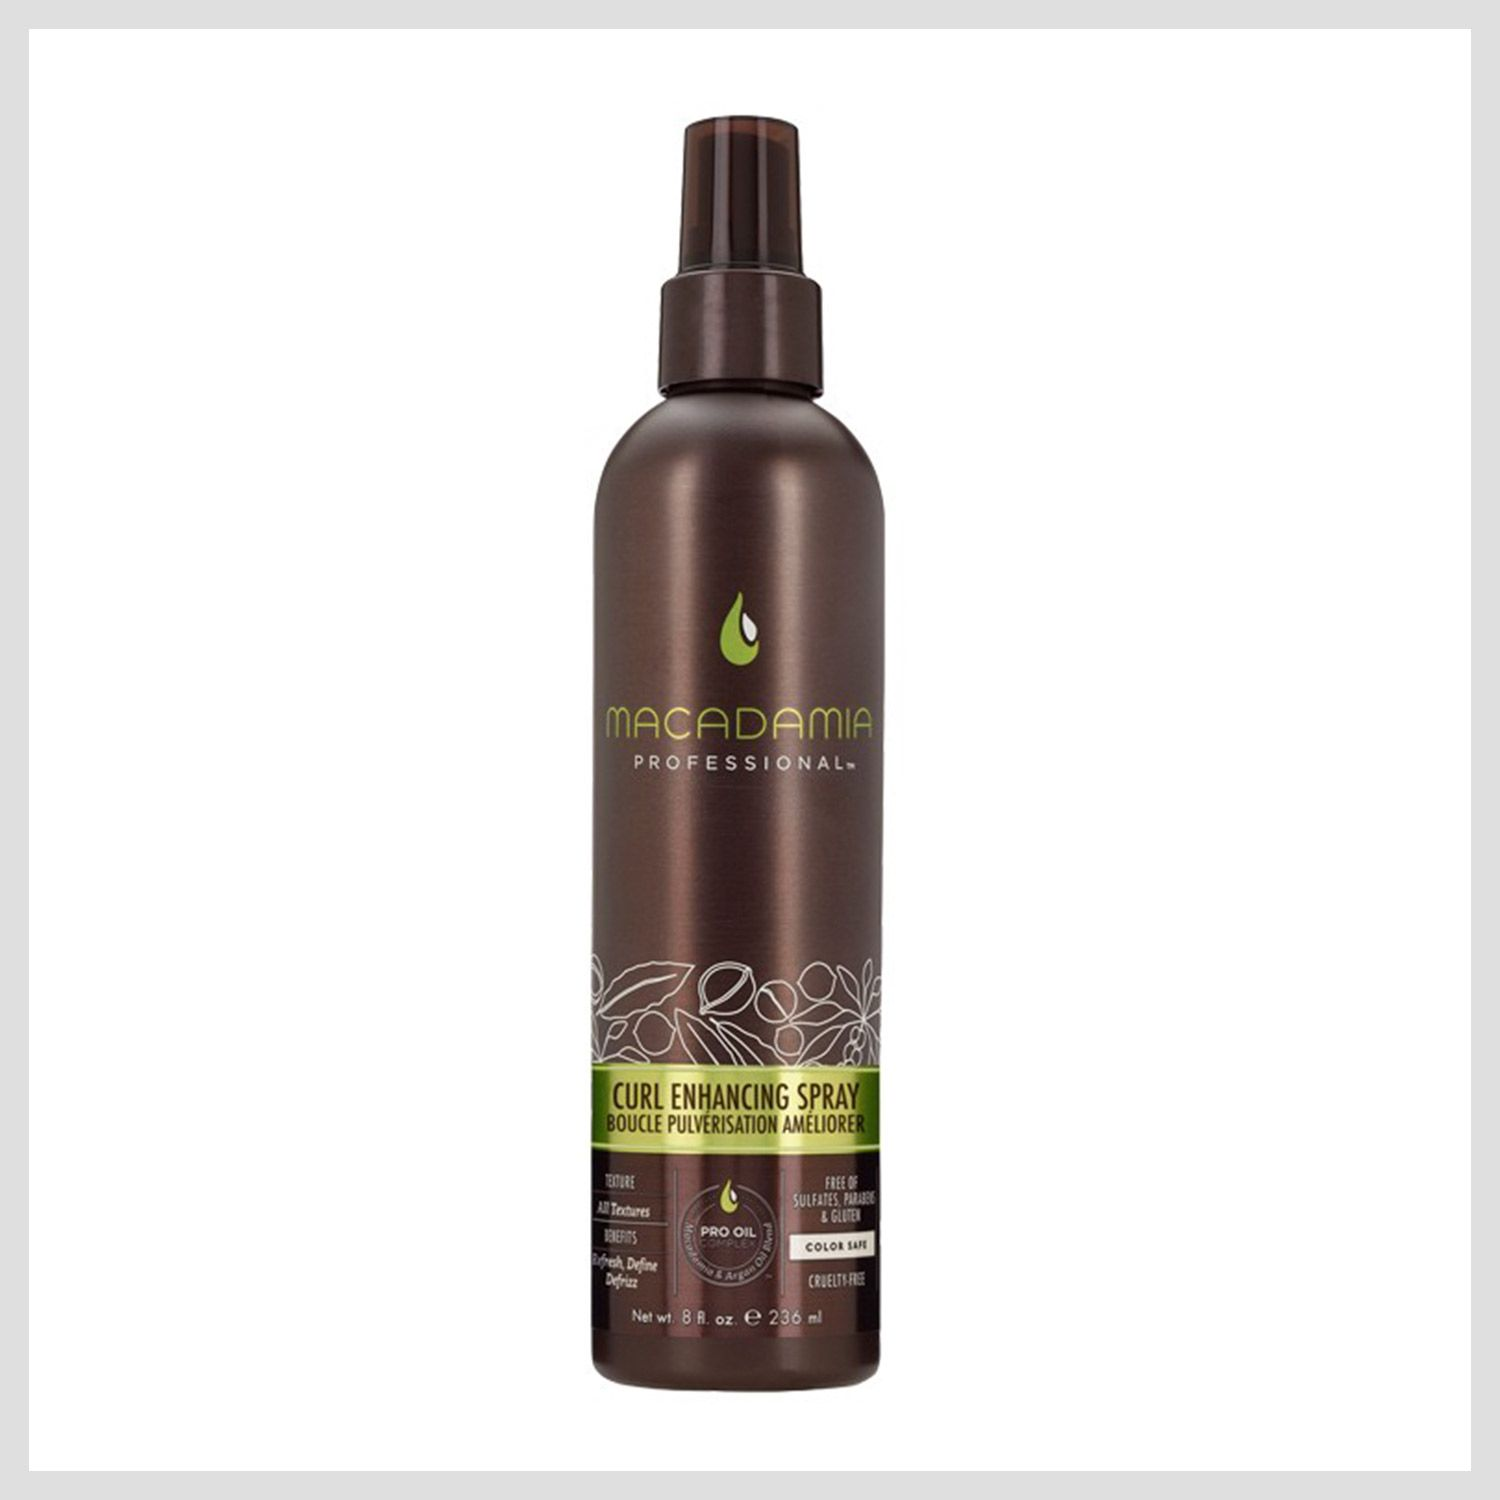 """<p>This product defines and reactivates hair to leave it smooth and shiny, while enhancing your curls' natural shape. �</p><p>$25, <a href=""""http://www.ulta.com/ulta/browse/productDetail.jsp?productId=xlsImpprod14021033#reviews"""" target=""""_blank"""">ulta.com</a></p>"""